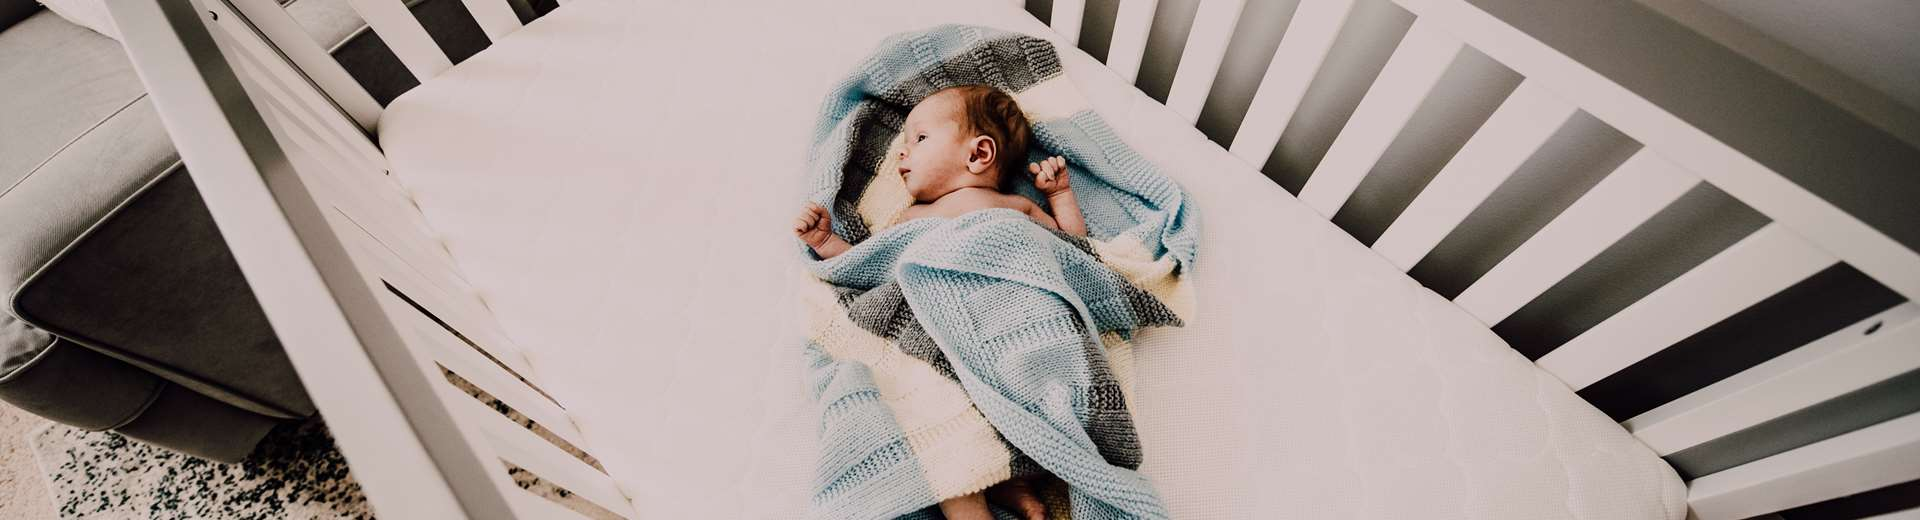 A baby wrapped in a blue blanket laying in a crib looking up at a mobile.